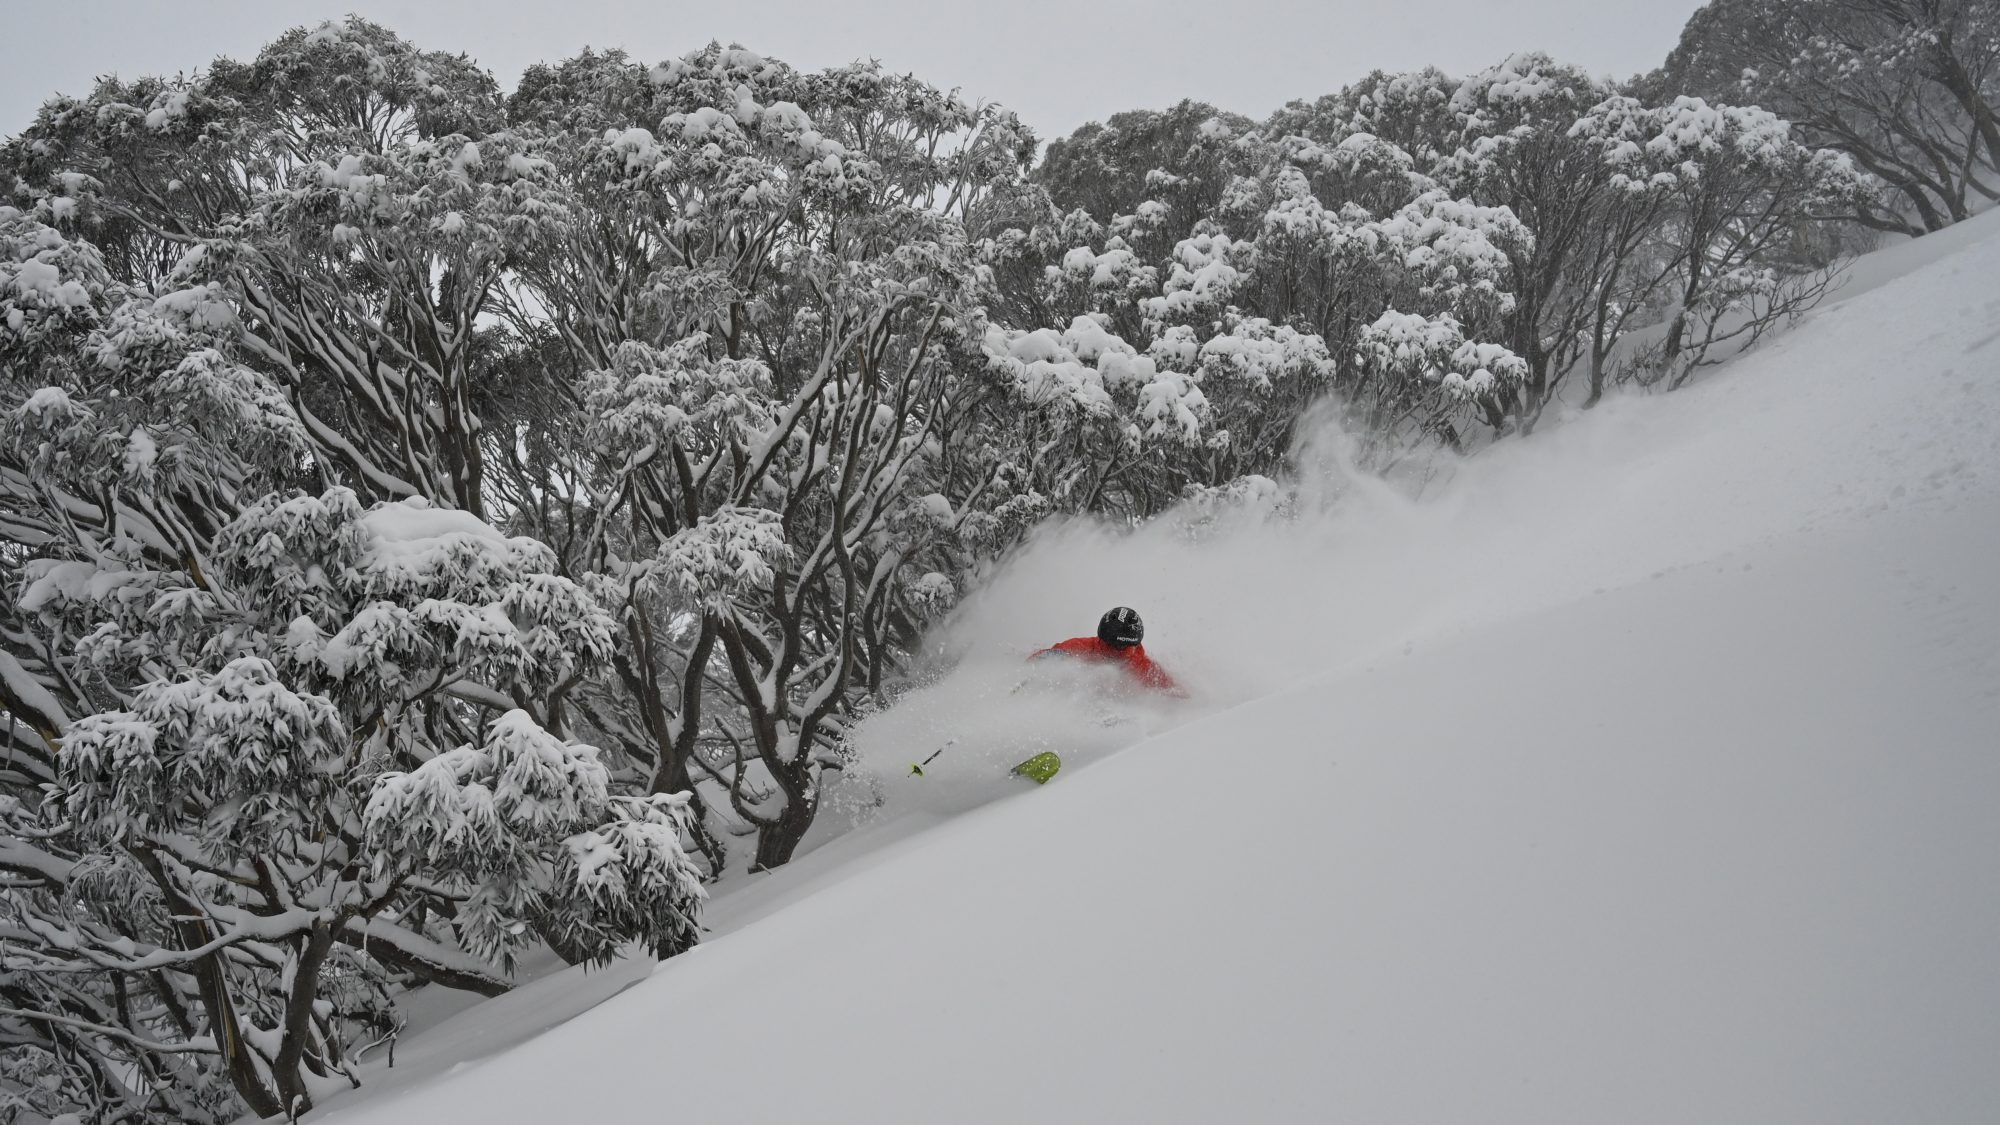 Photo: Hotham Resort. Epic Australia Pass Now Includes Unlimited, Unrestricted Access to Hotham Alpine Resort with Sales Deadline Extended to 18 June.